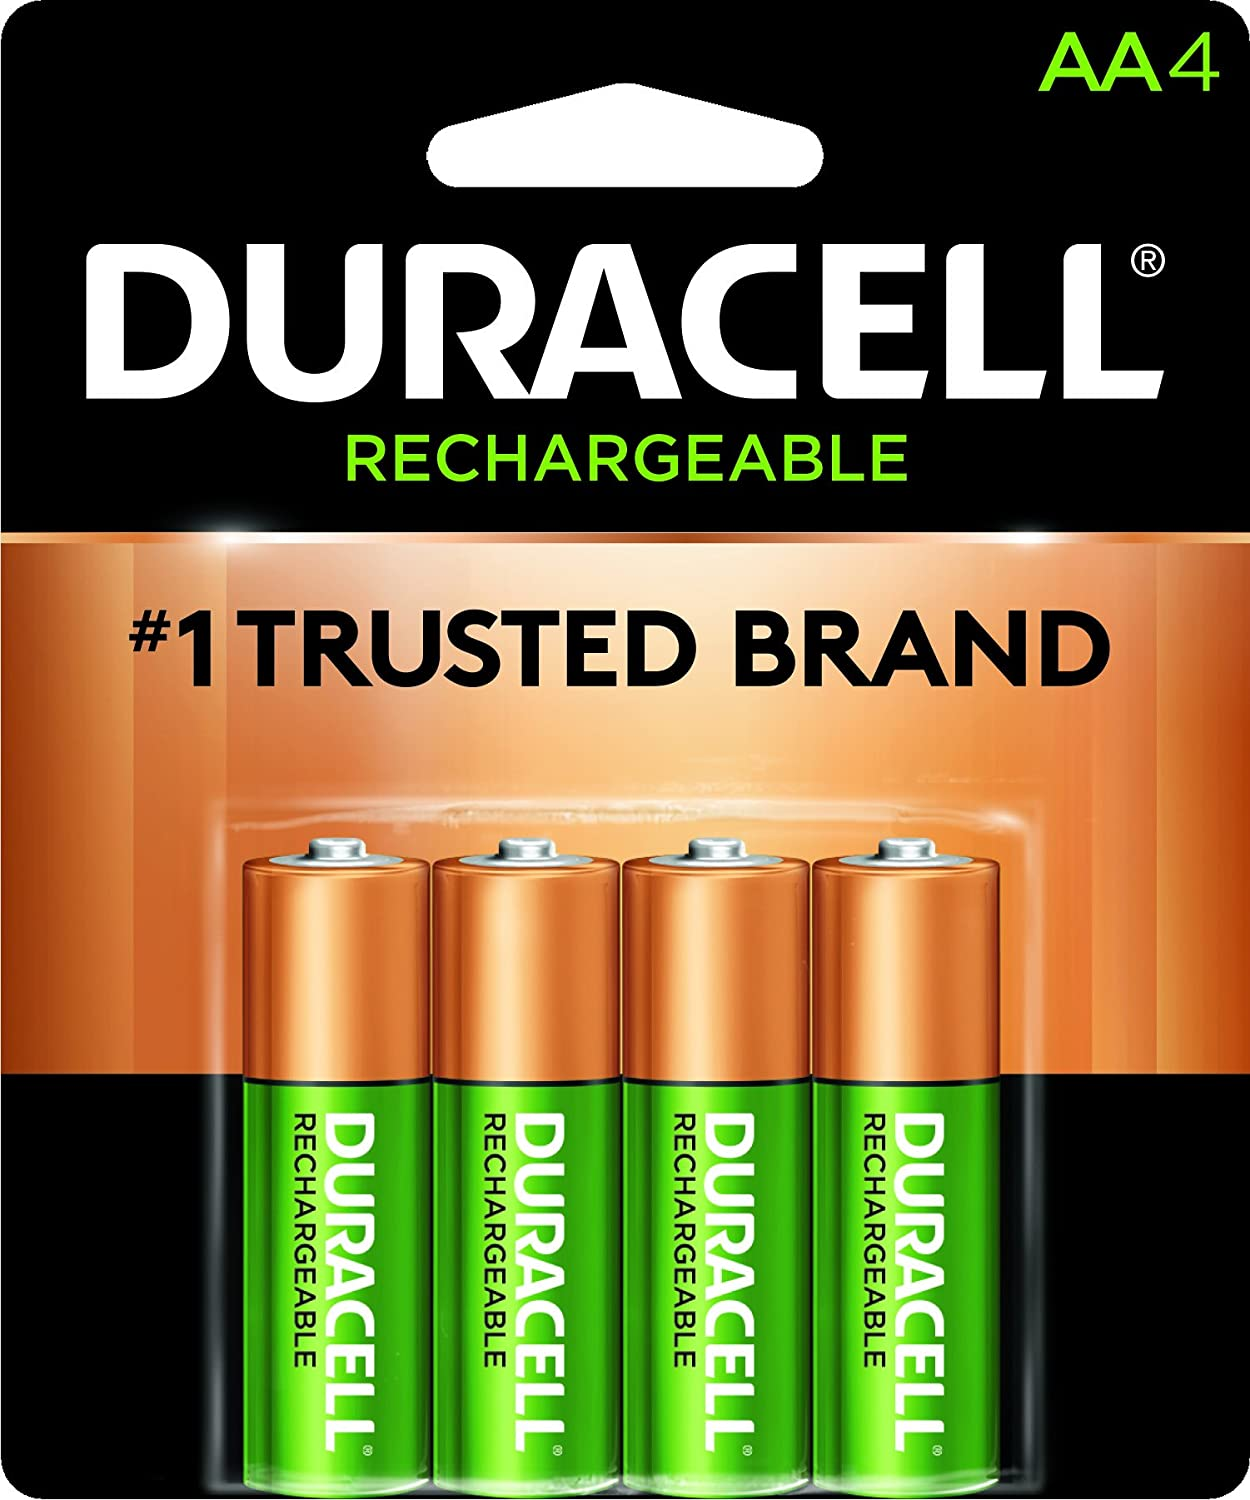 Duracell Rechargeable Long Life AA-4 Batteries in a Pack 2500/mAh AA-Rechx4